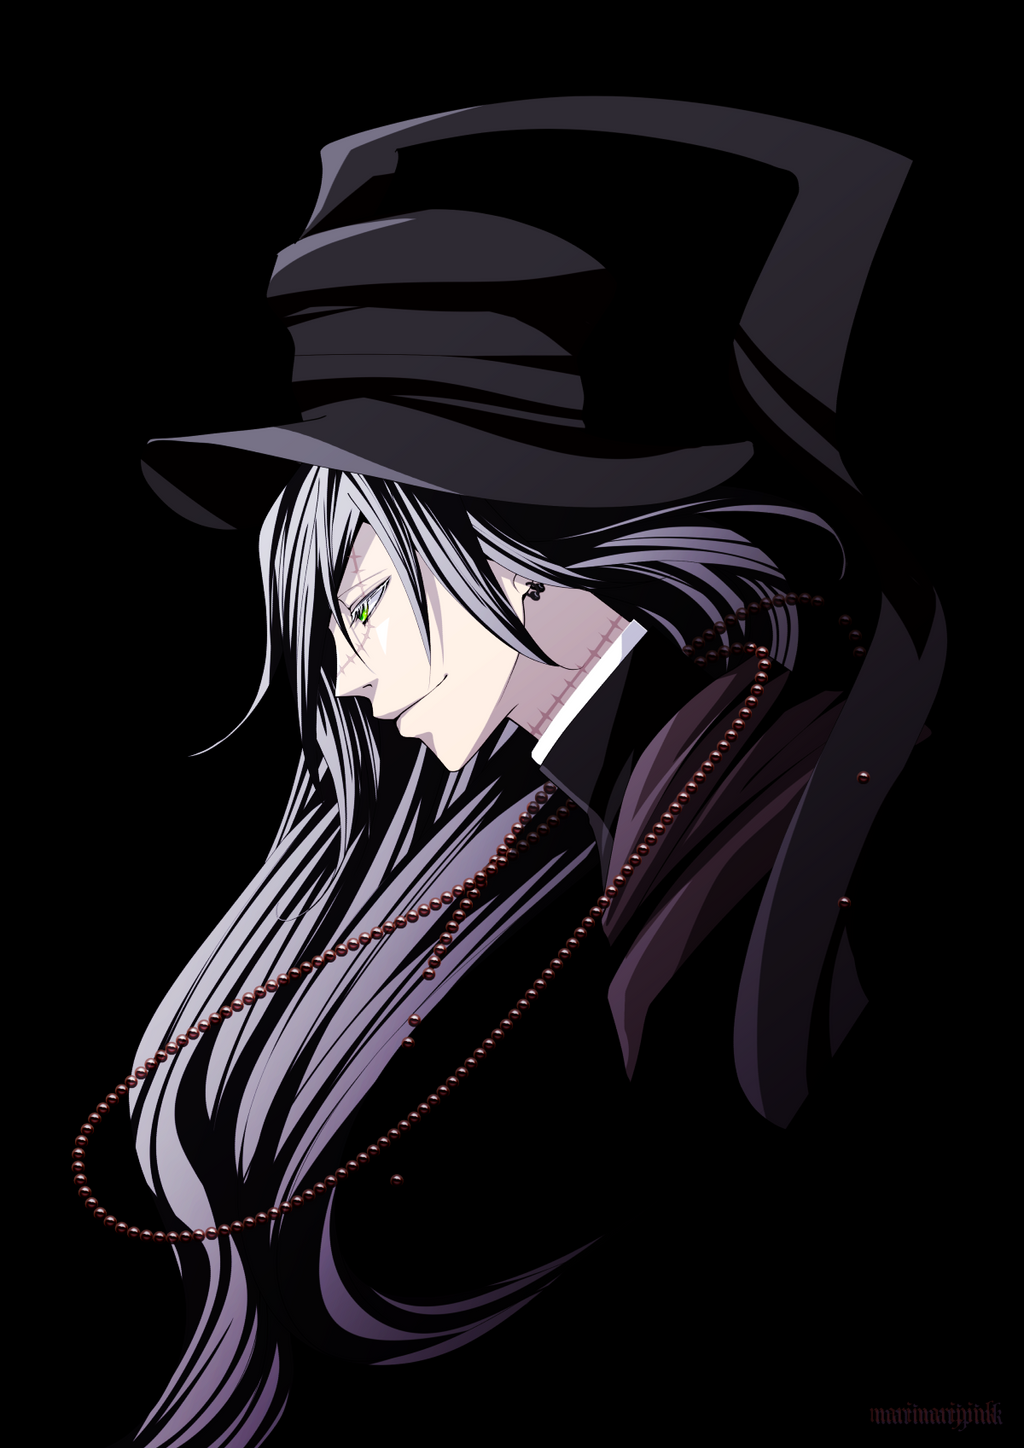 Undertaker By Marimaripink On DeviantArt